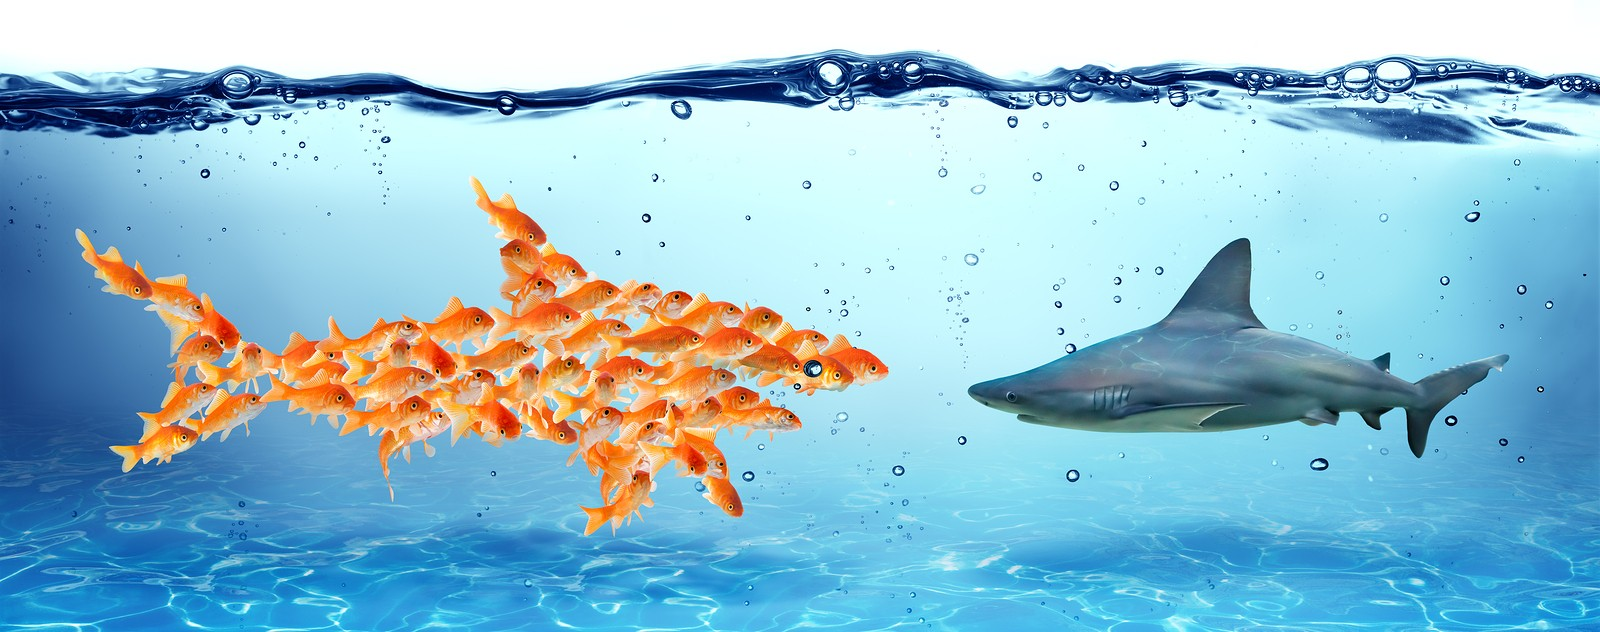 Unity is strength - teamwork concept, group of fish faces shark